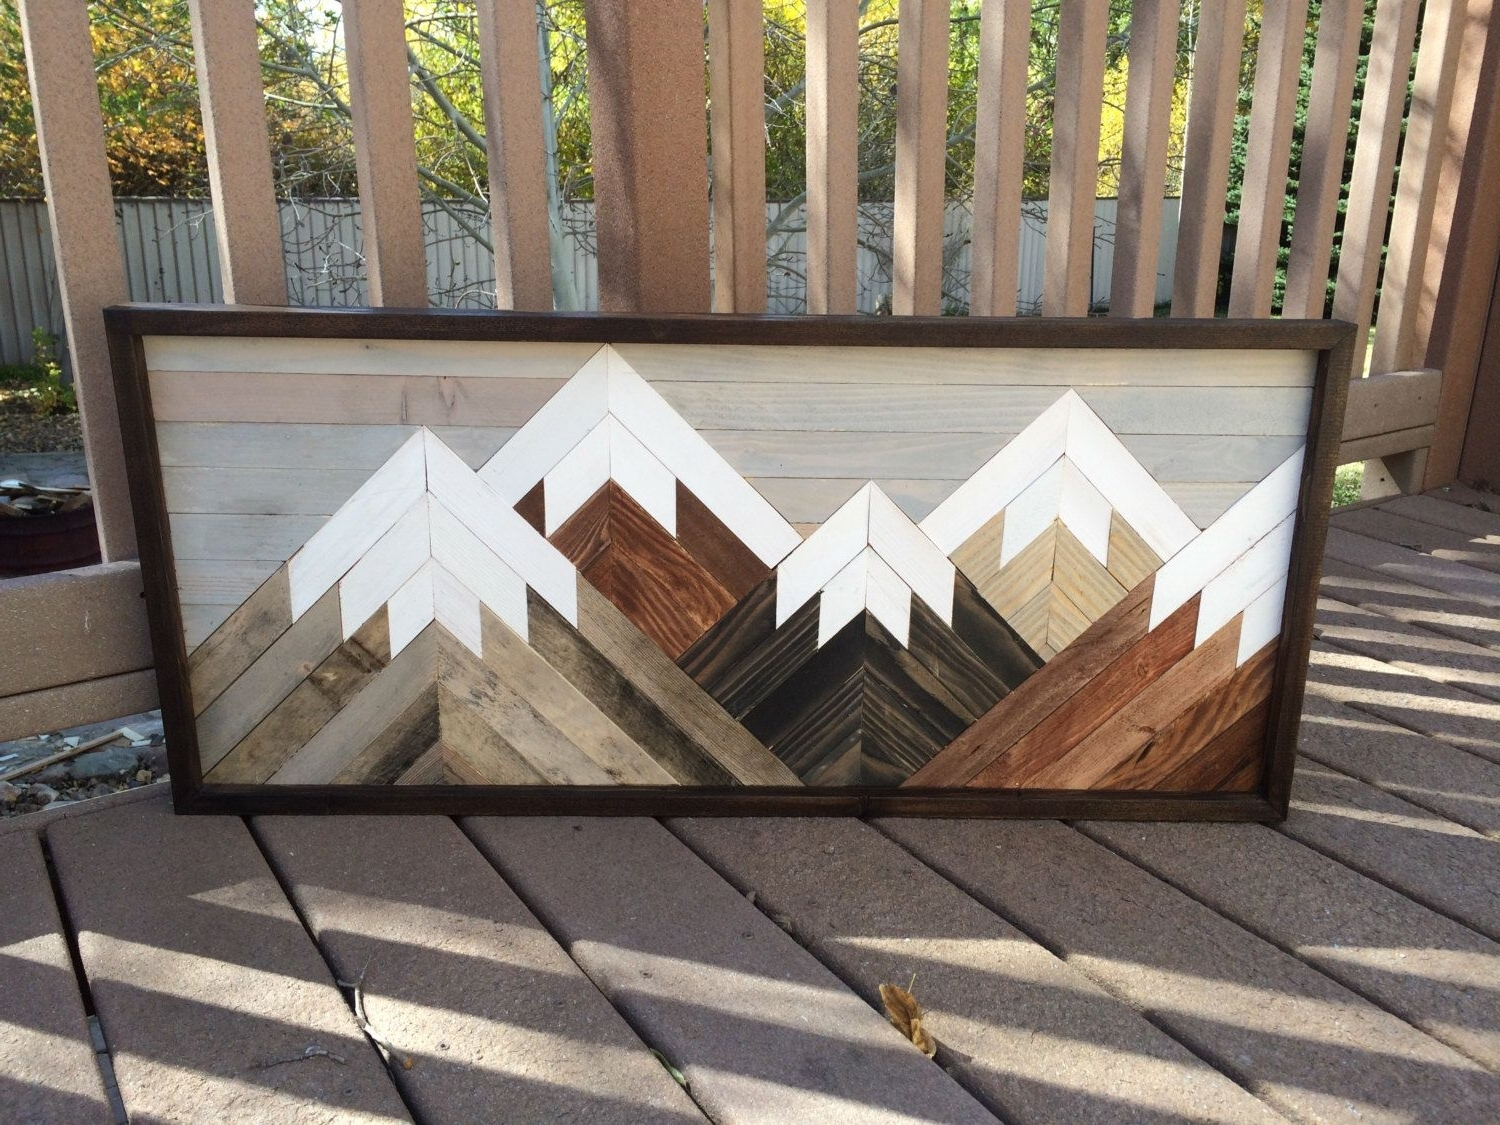 2017 Stained Wood Wall Art Intended For Reclaimed Wood Wall Art Mountain Scene, Mantel Art, Cabin Decor (View 2 of 15)